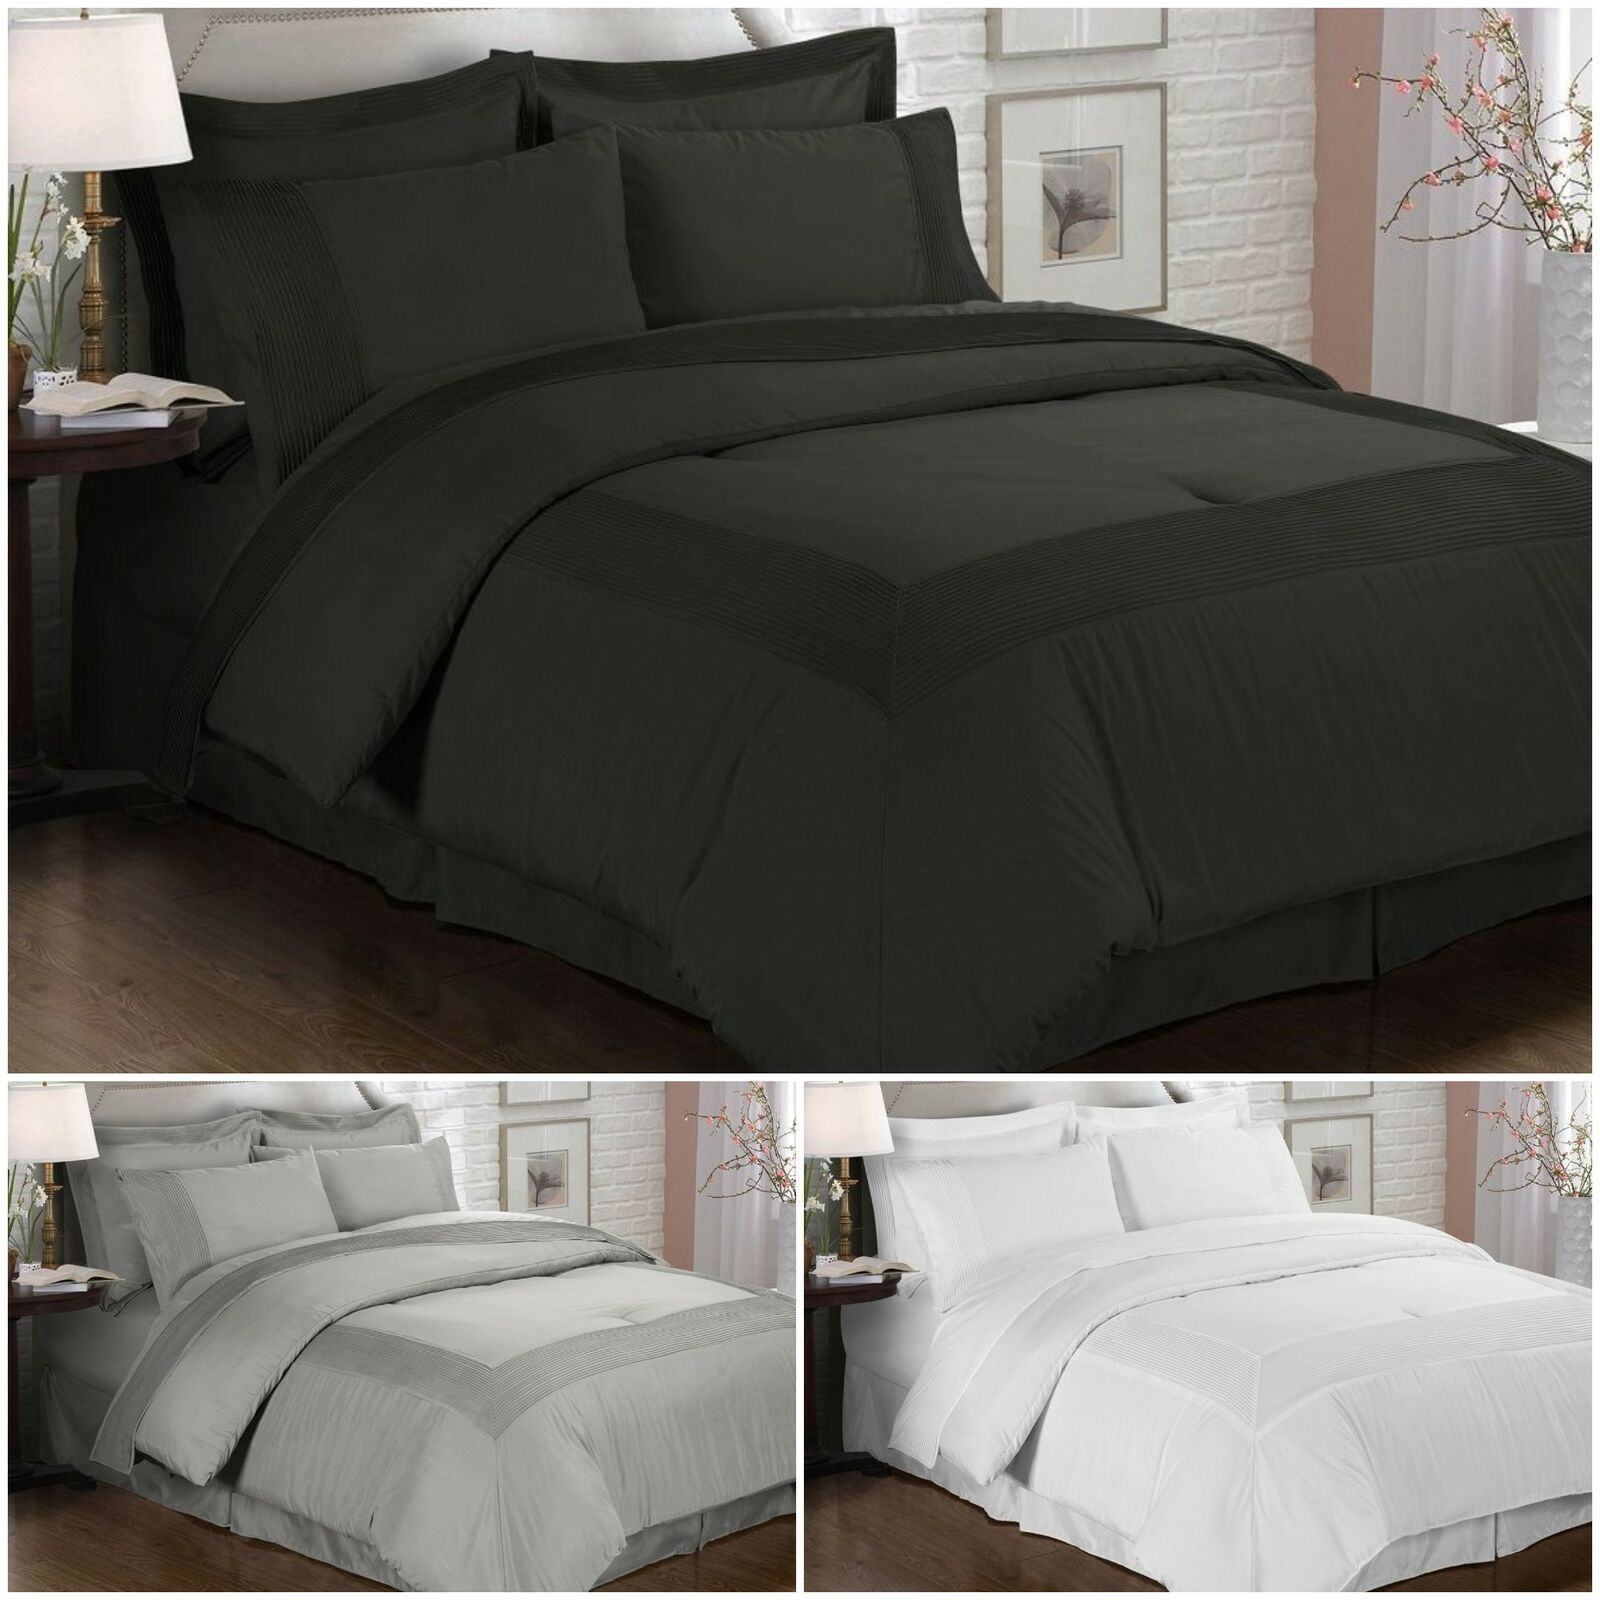 Quilted /& Embroidered Over-Filled Pebble Comforter Collection 8-Piece Set